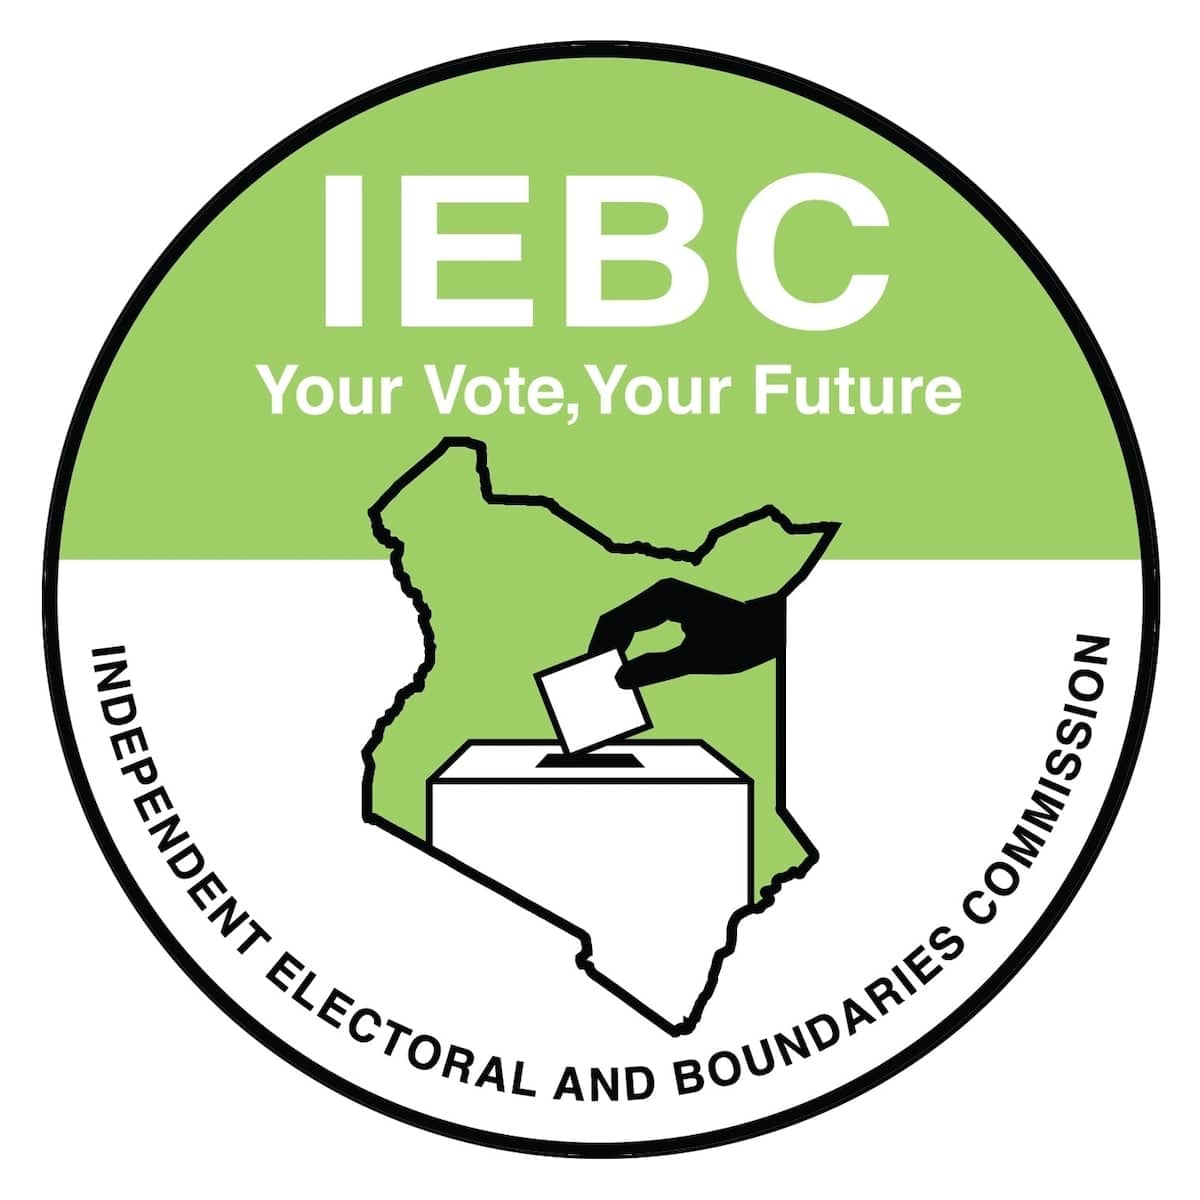 IEBC clerical jobs application form, requirements & procedure